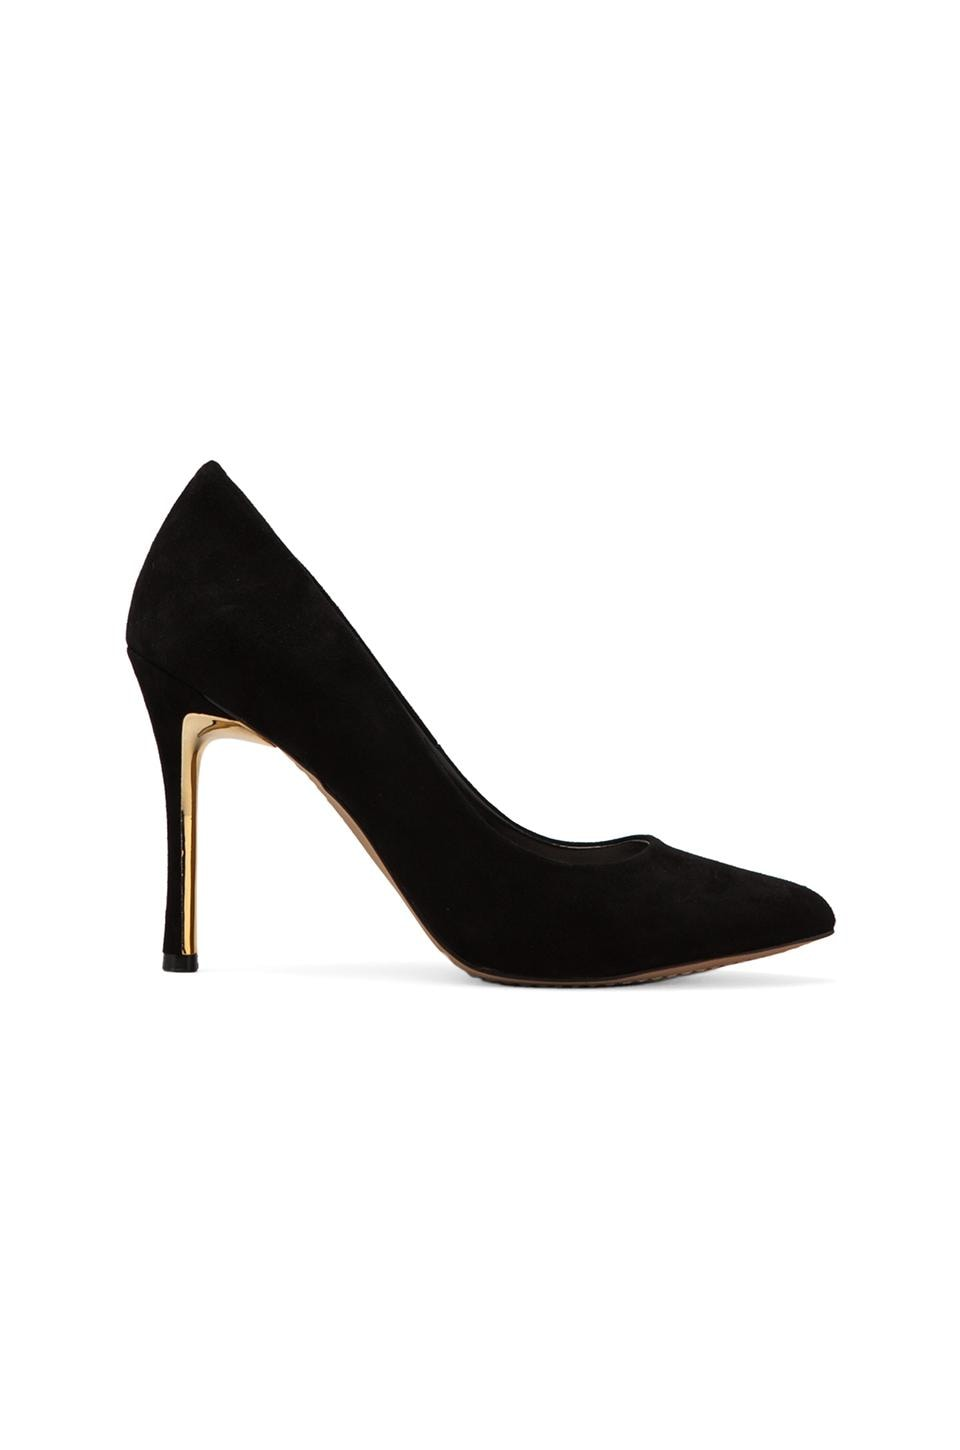 Vince Camuto Cynthea Heel in Black